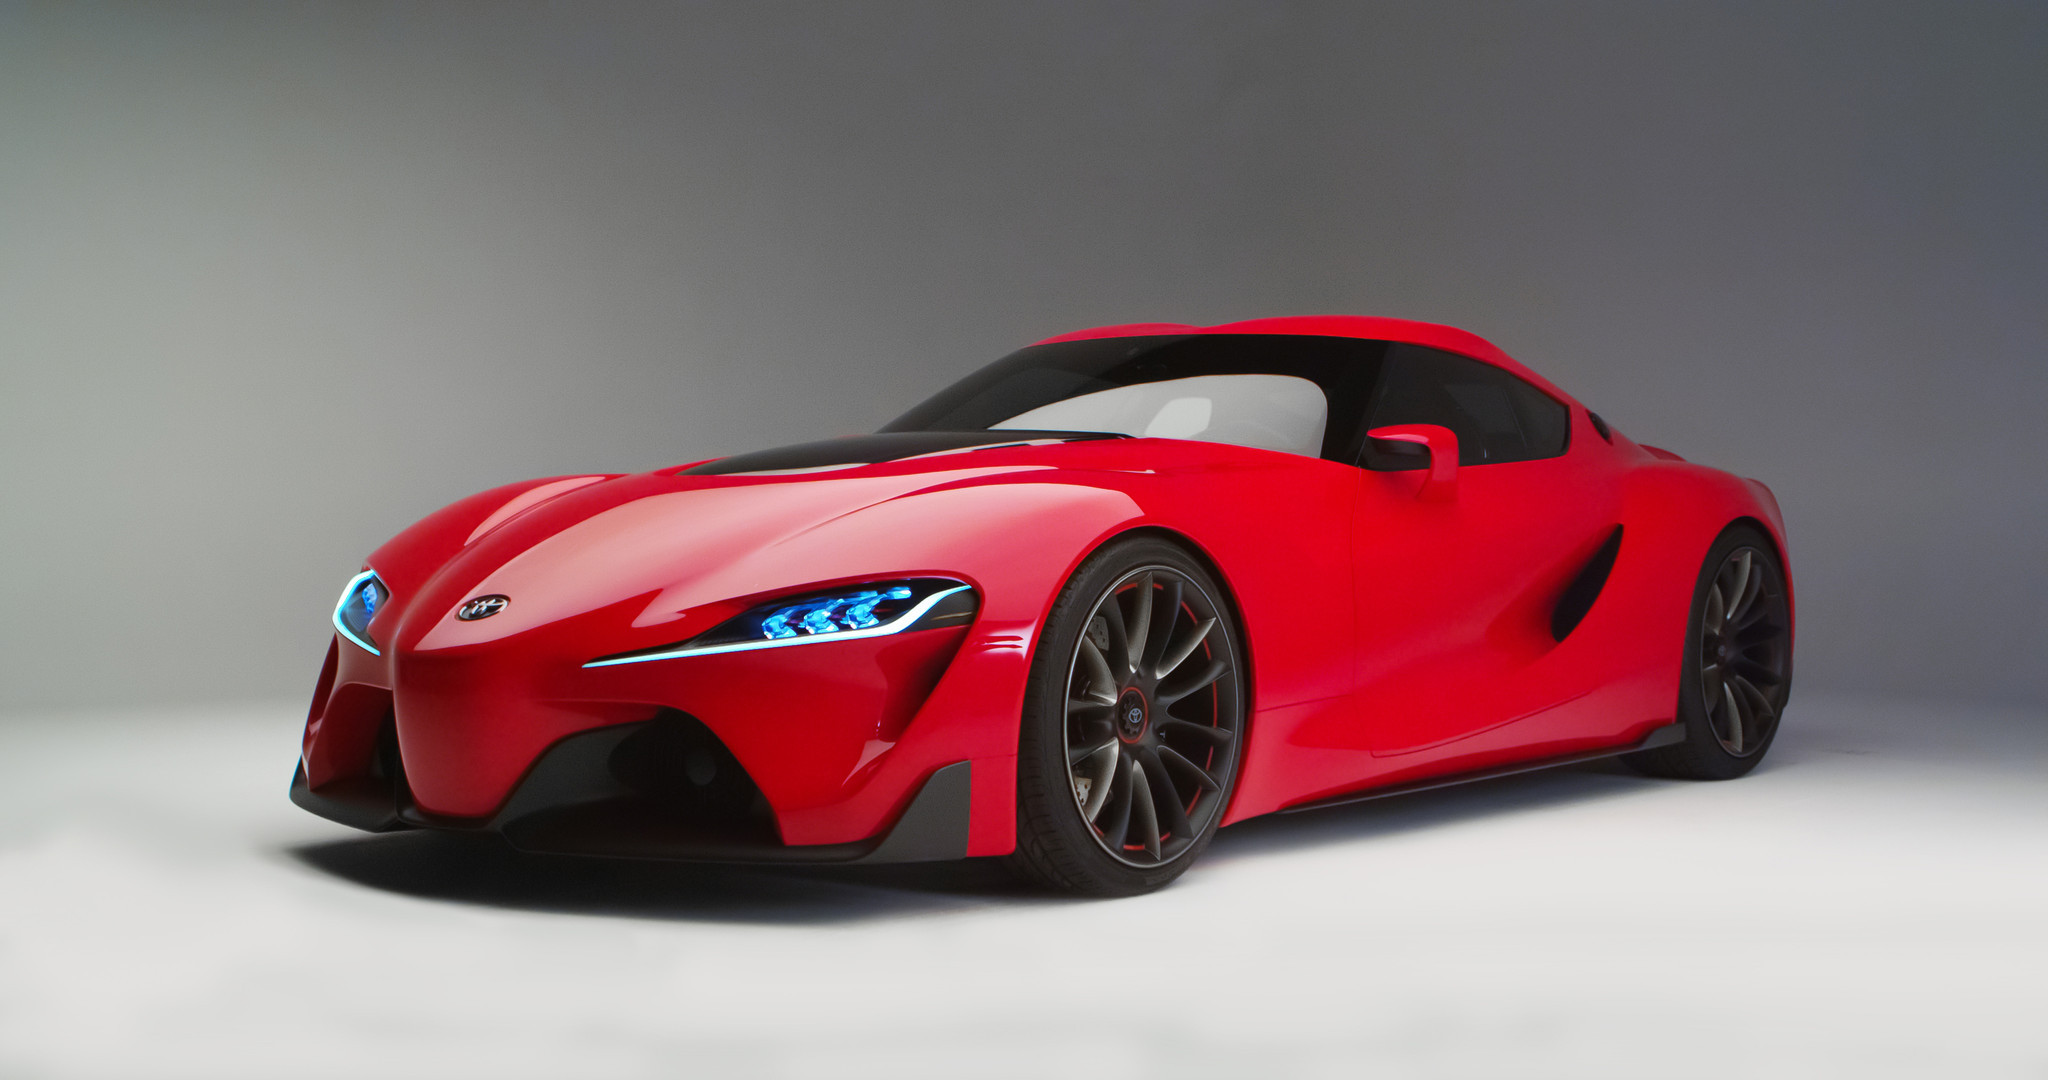 Toyota FT-1 Concept Backgrounds on Wallpapers Vista